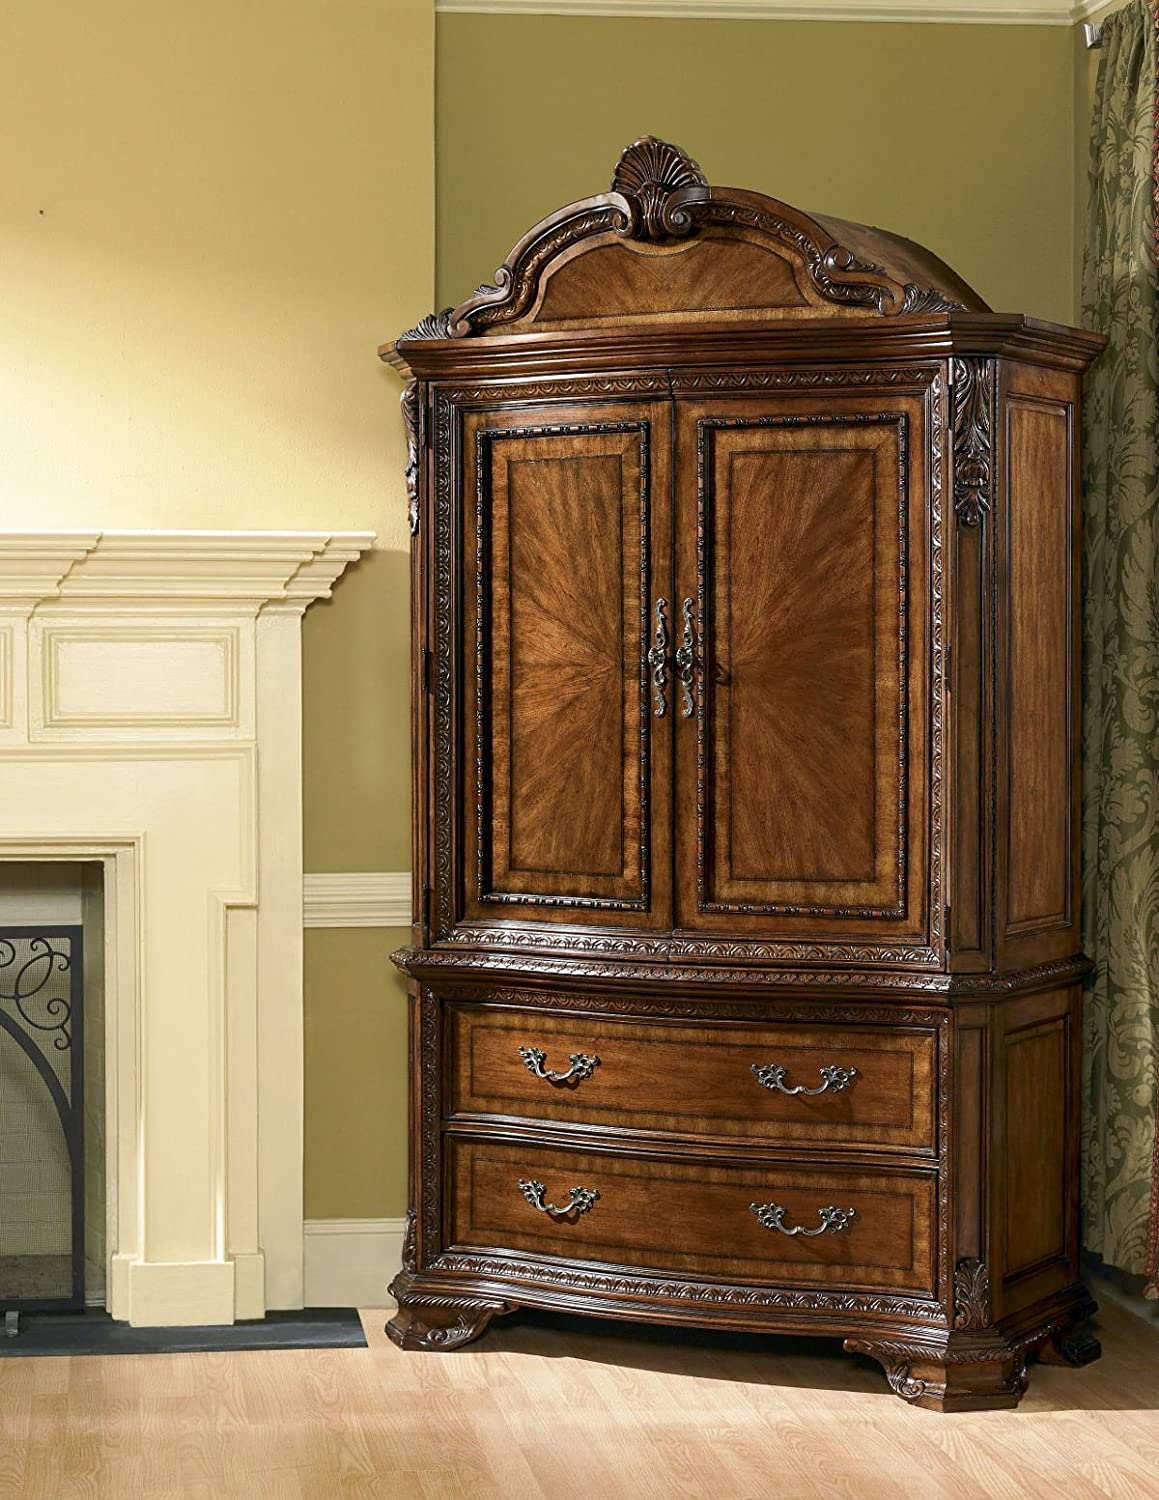 A.R.T. Old World Armoire Complete in Warm Pomegranate